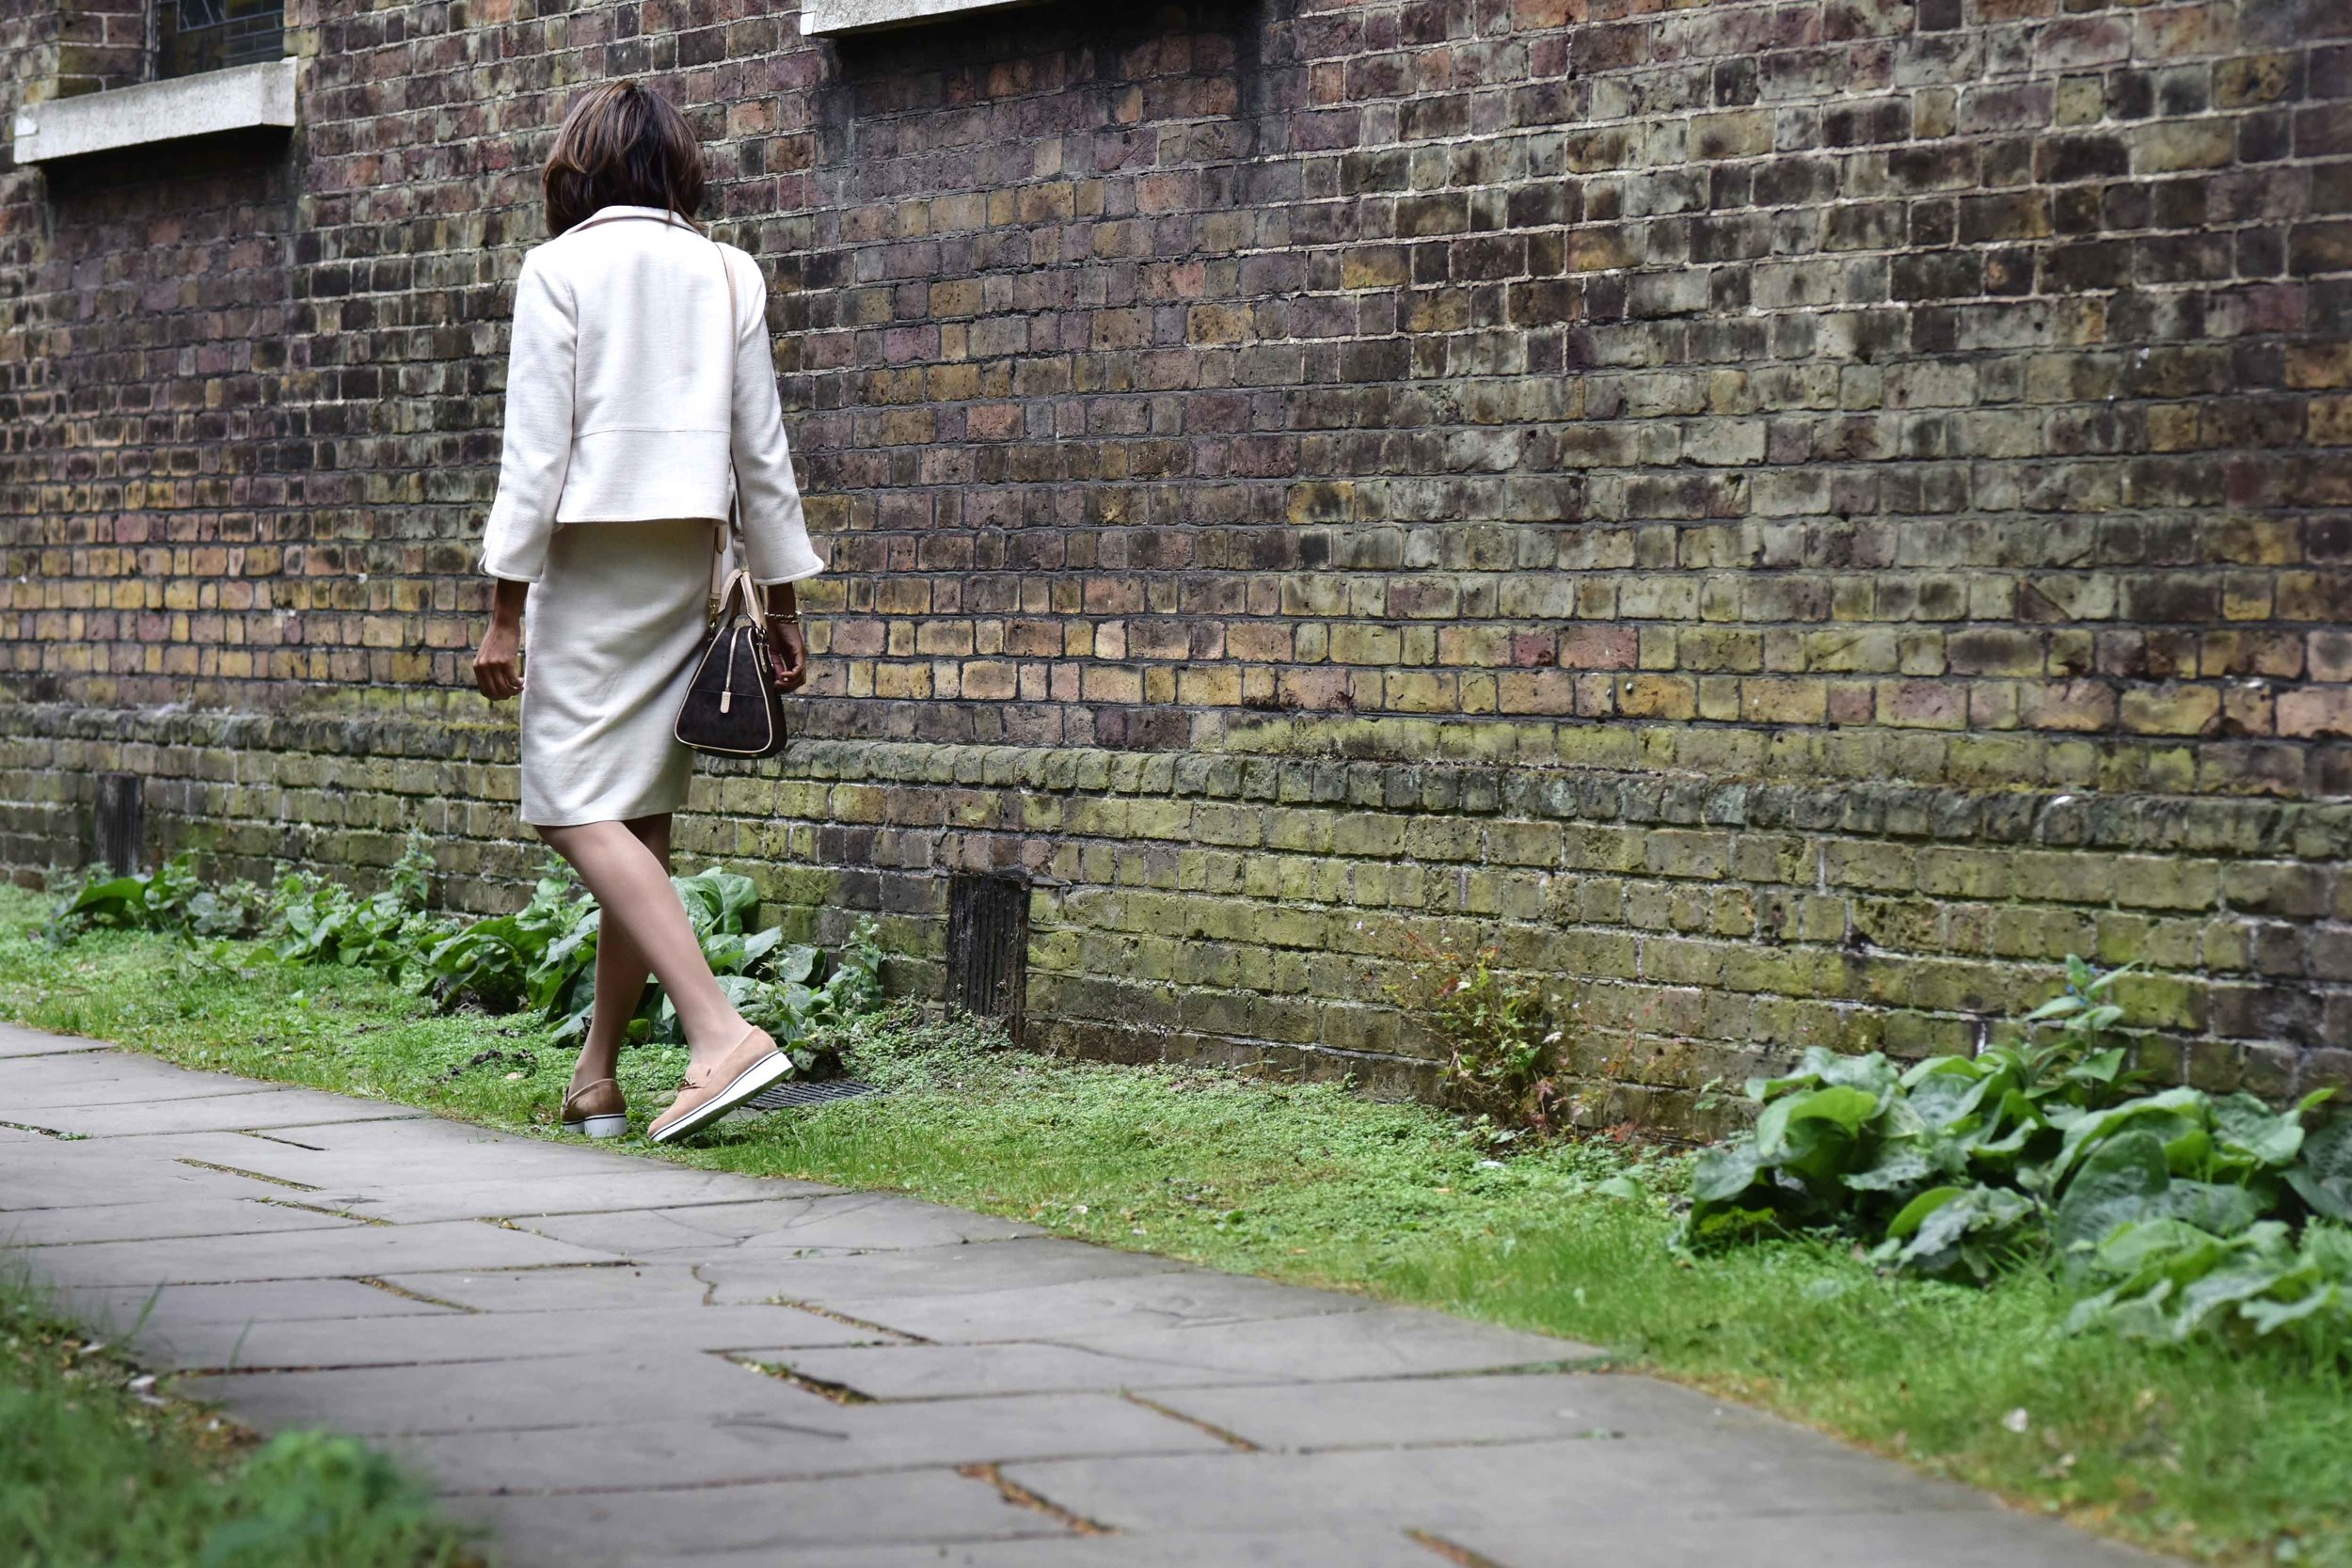 Talbots shift dress and jacket, River Island shoes, Michael Kors bag, graveyard, Hampstead Heath, London. Image©thingstodot.com